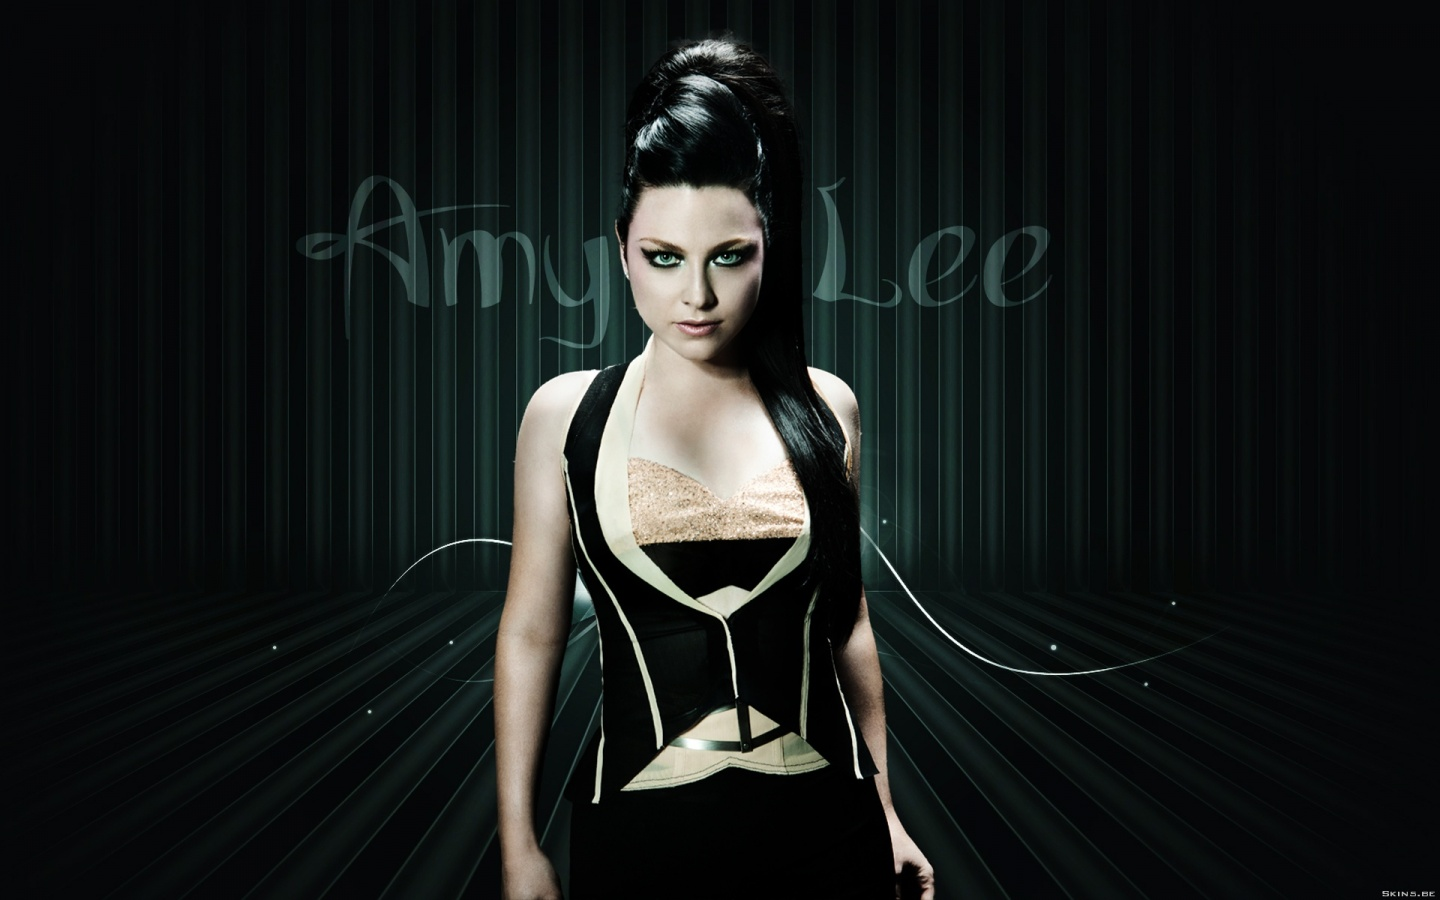 Amy Lee of Evanescence by ZhangXector on DeviantArt